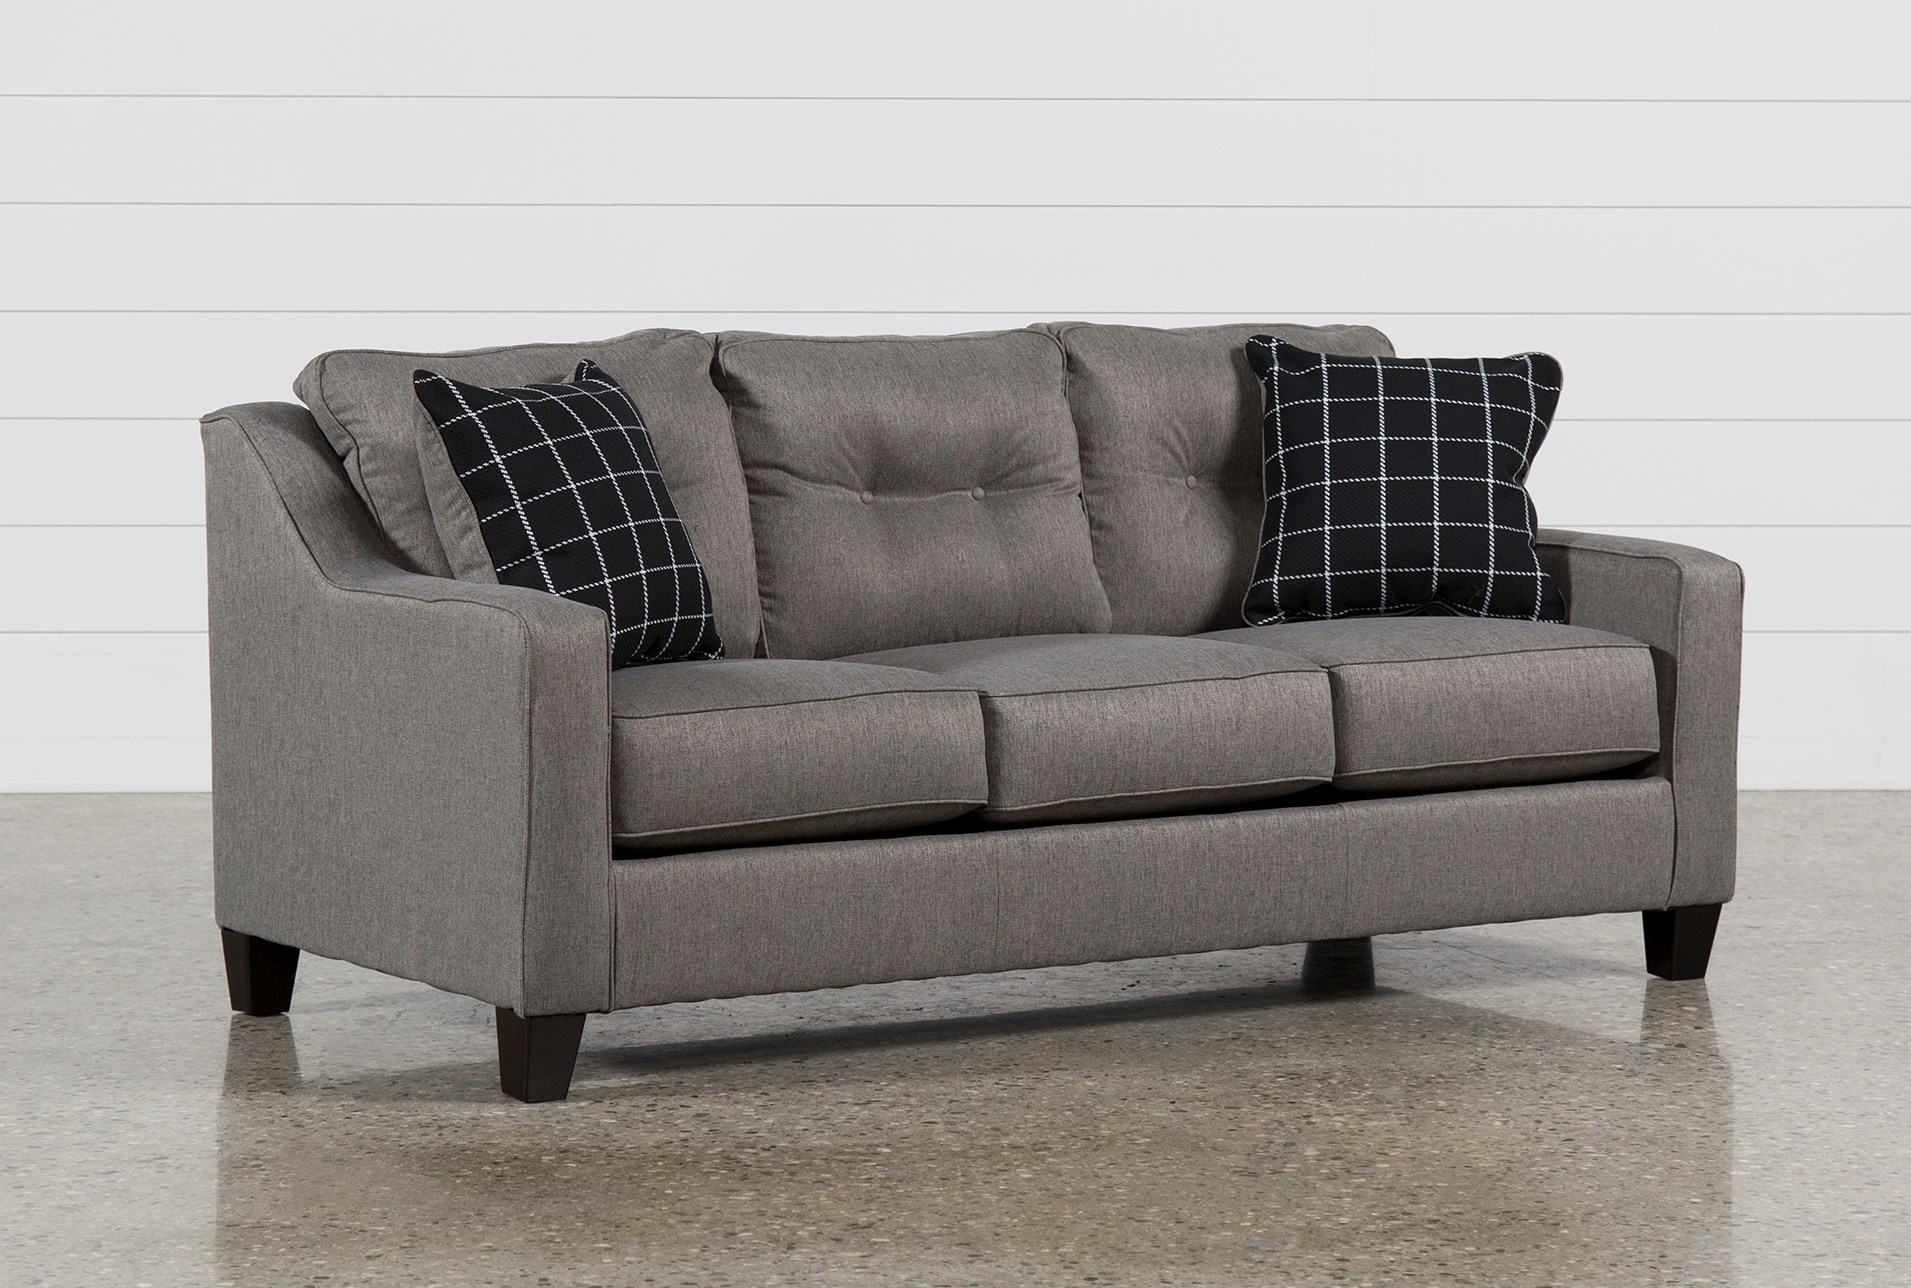 Brindon Charcoal Queen Sofa Sleeper Qty 1 Has Been Successfully Added To Your Cart